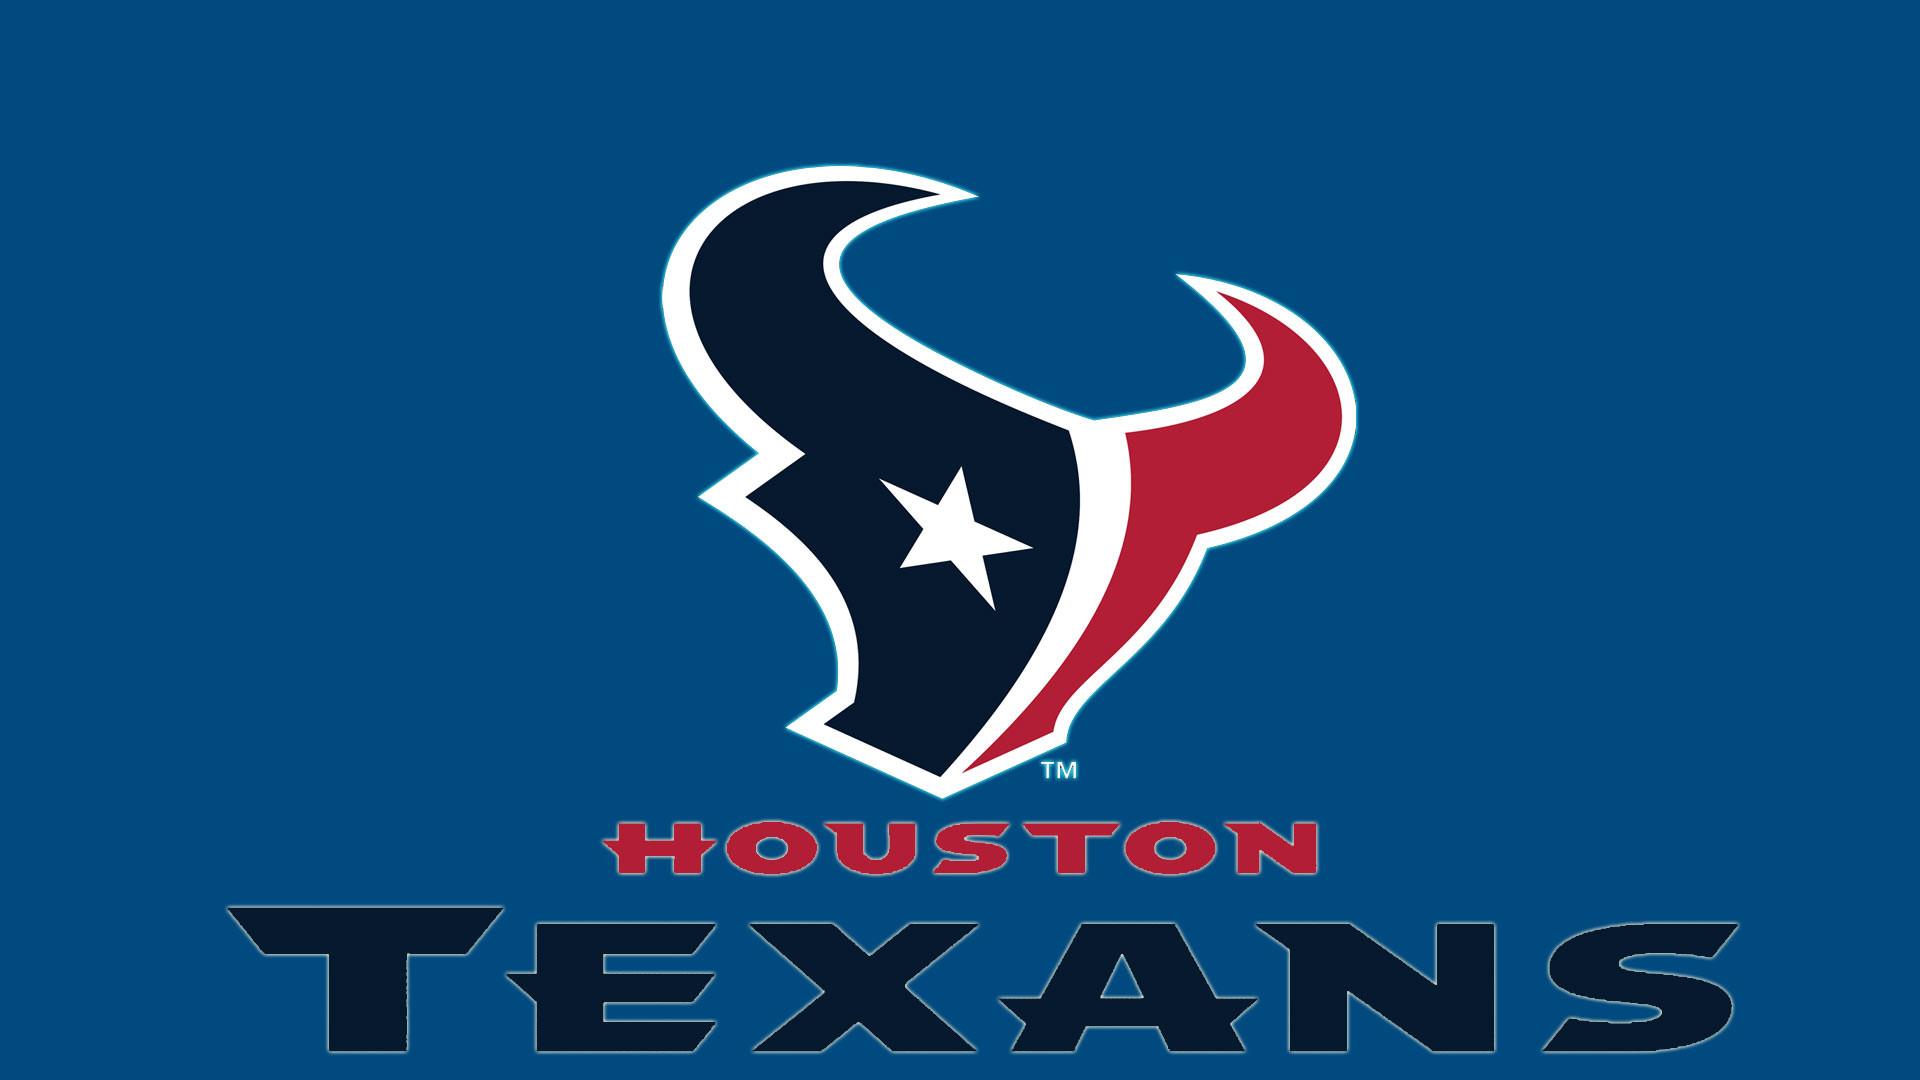 1920x1080 Houston Texans logo Hd 1080p Wallpaper screen size 1920X1080